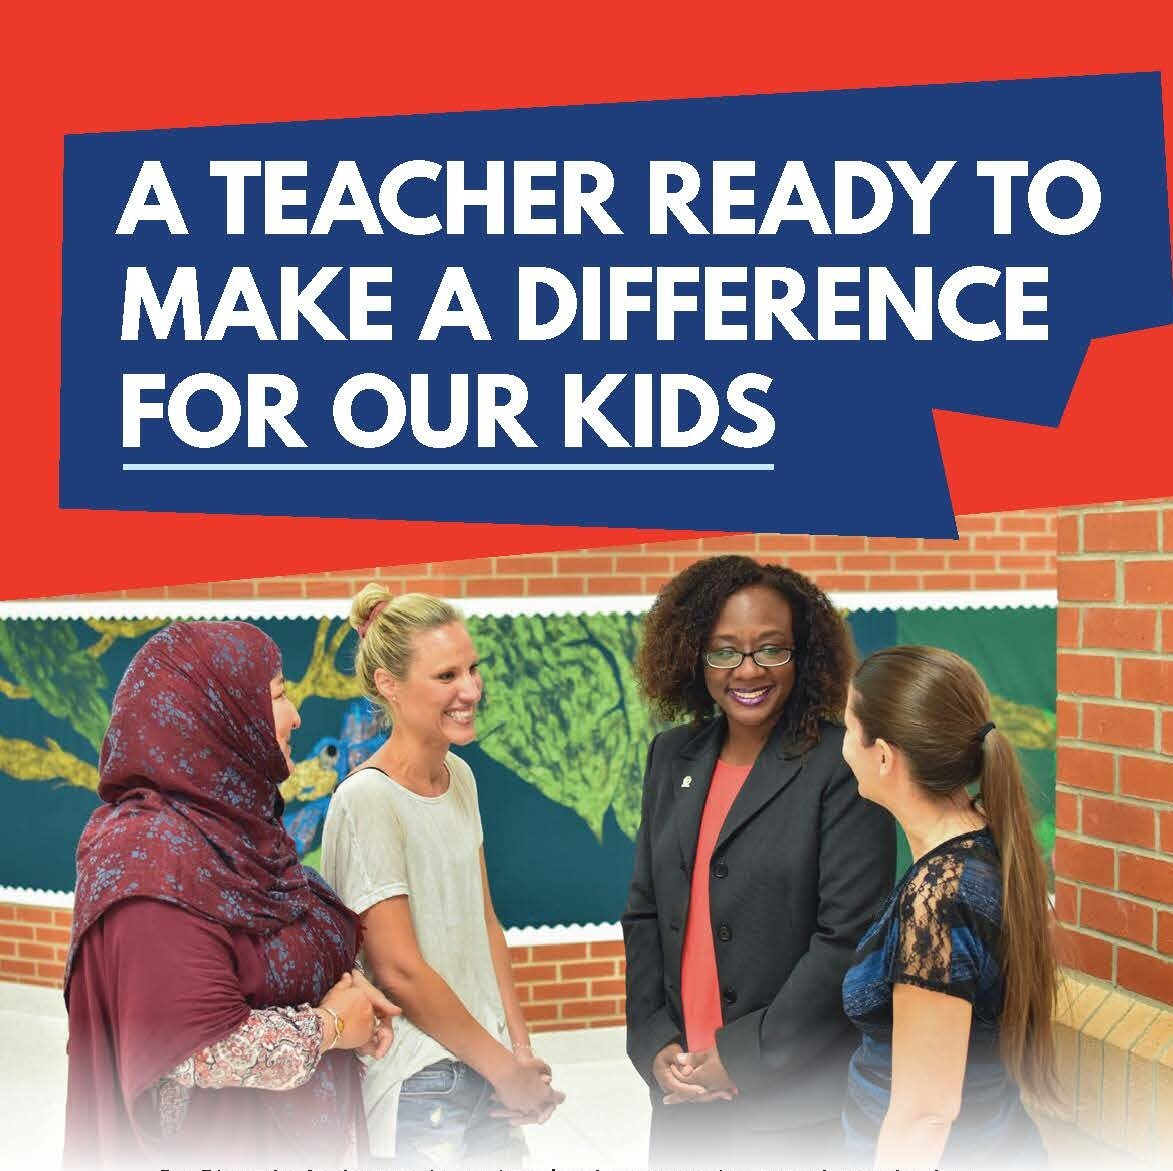 Why I'm Running - I am honored and humbled to be on the November 5, 2019 ballot as the Democratic-endorsed candidate for the open Mason District seat on the Fairfax County School Board.As a 23-year career educator, long-time Mason District resident, parent of two FCPS elementary school students, community volunteer, former Army National Guard Reservist, and first-generation American, I will use my background and experiences to serve as a strong advocate for students and teachers. I pledge to serve as a full-time school board member and I will volunteer in a different Mason District school each week.I want to put Mason District students first today and in the future. With your support of my candidacy to serve on the Fairfax County School Board, I am confident that we can build on efforts to strengthen our schools because Strong Schools Build Strong Communities.Learn More